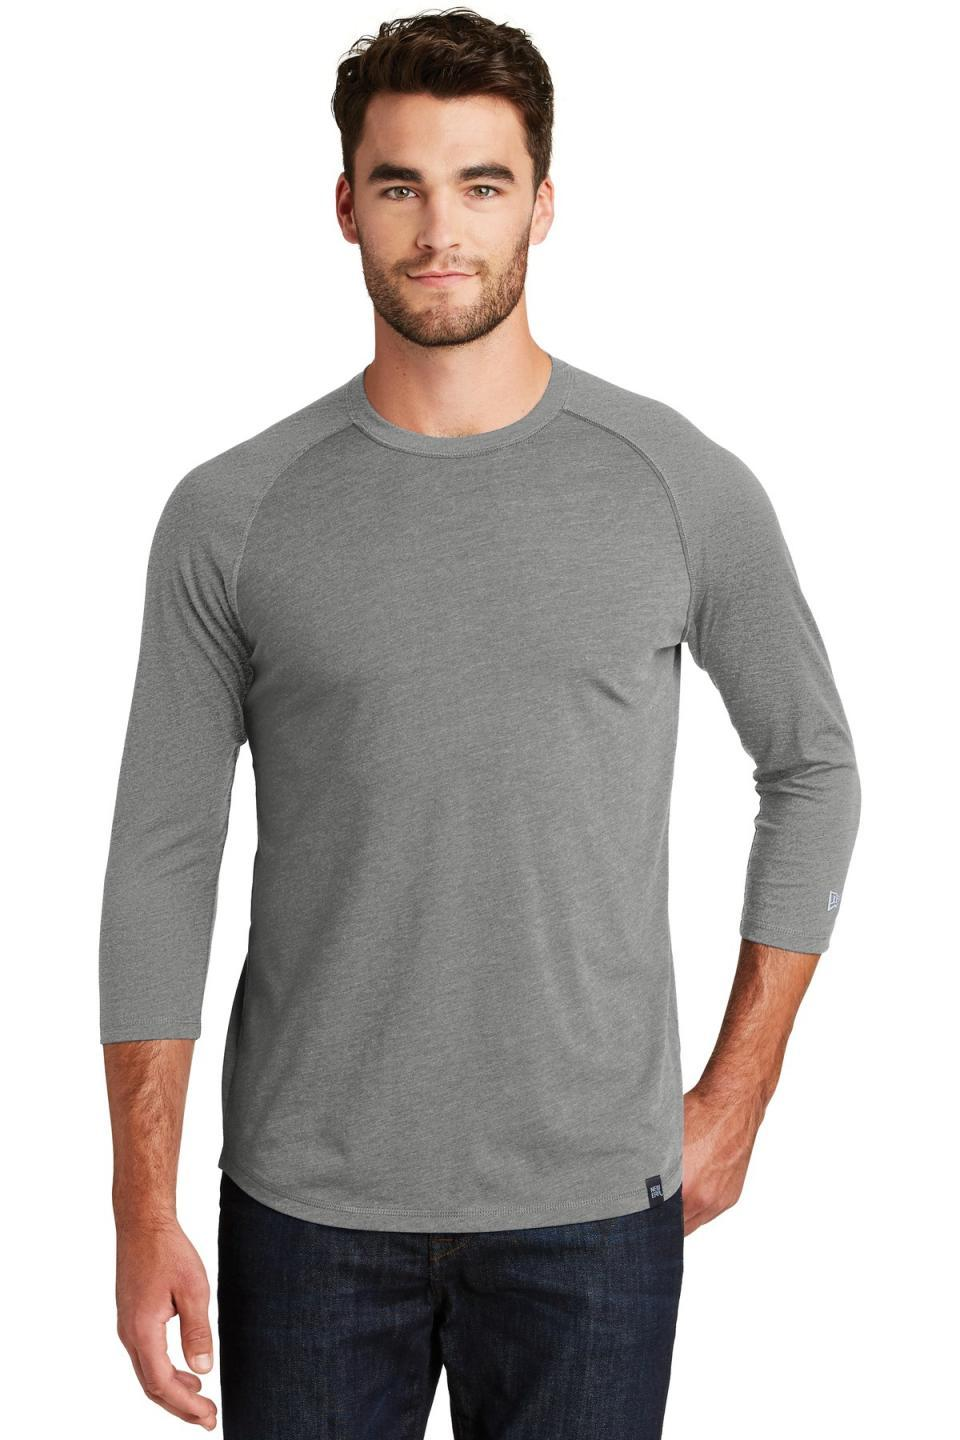 New Era Men's Heritage Blend 3/4-Sleeve Baseball Raglan Tee